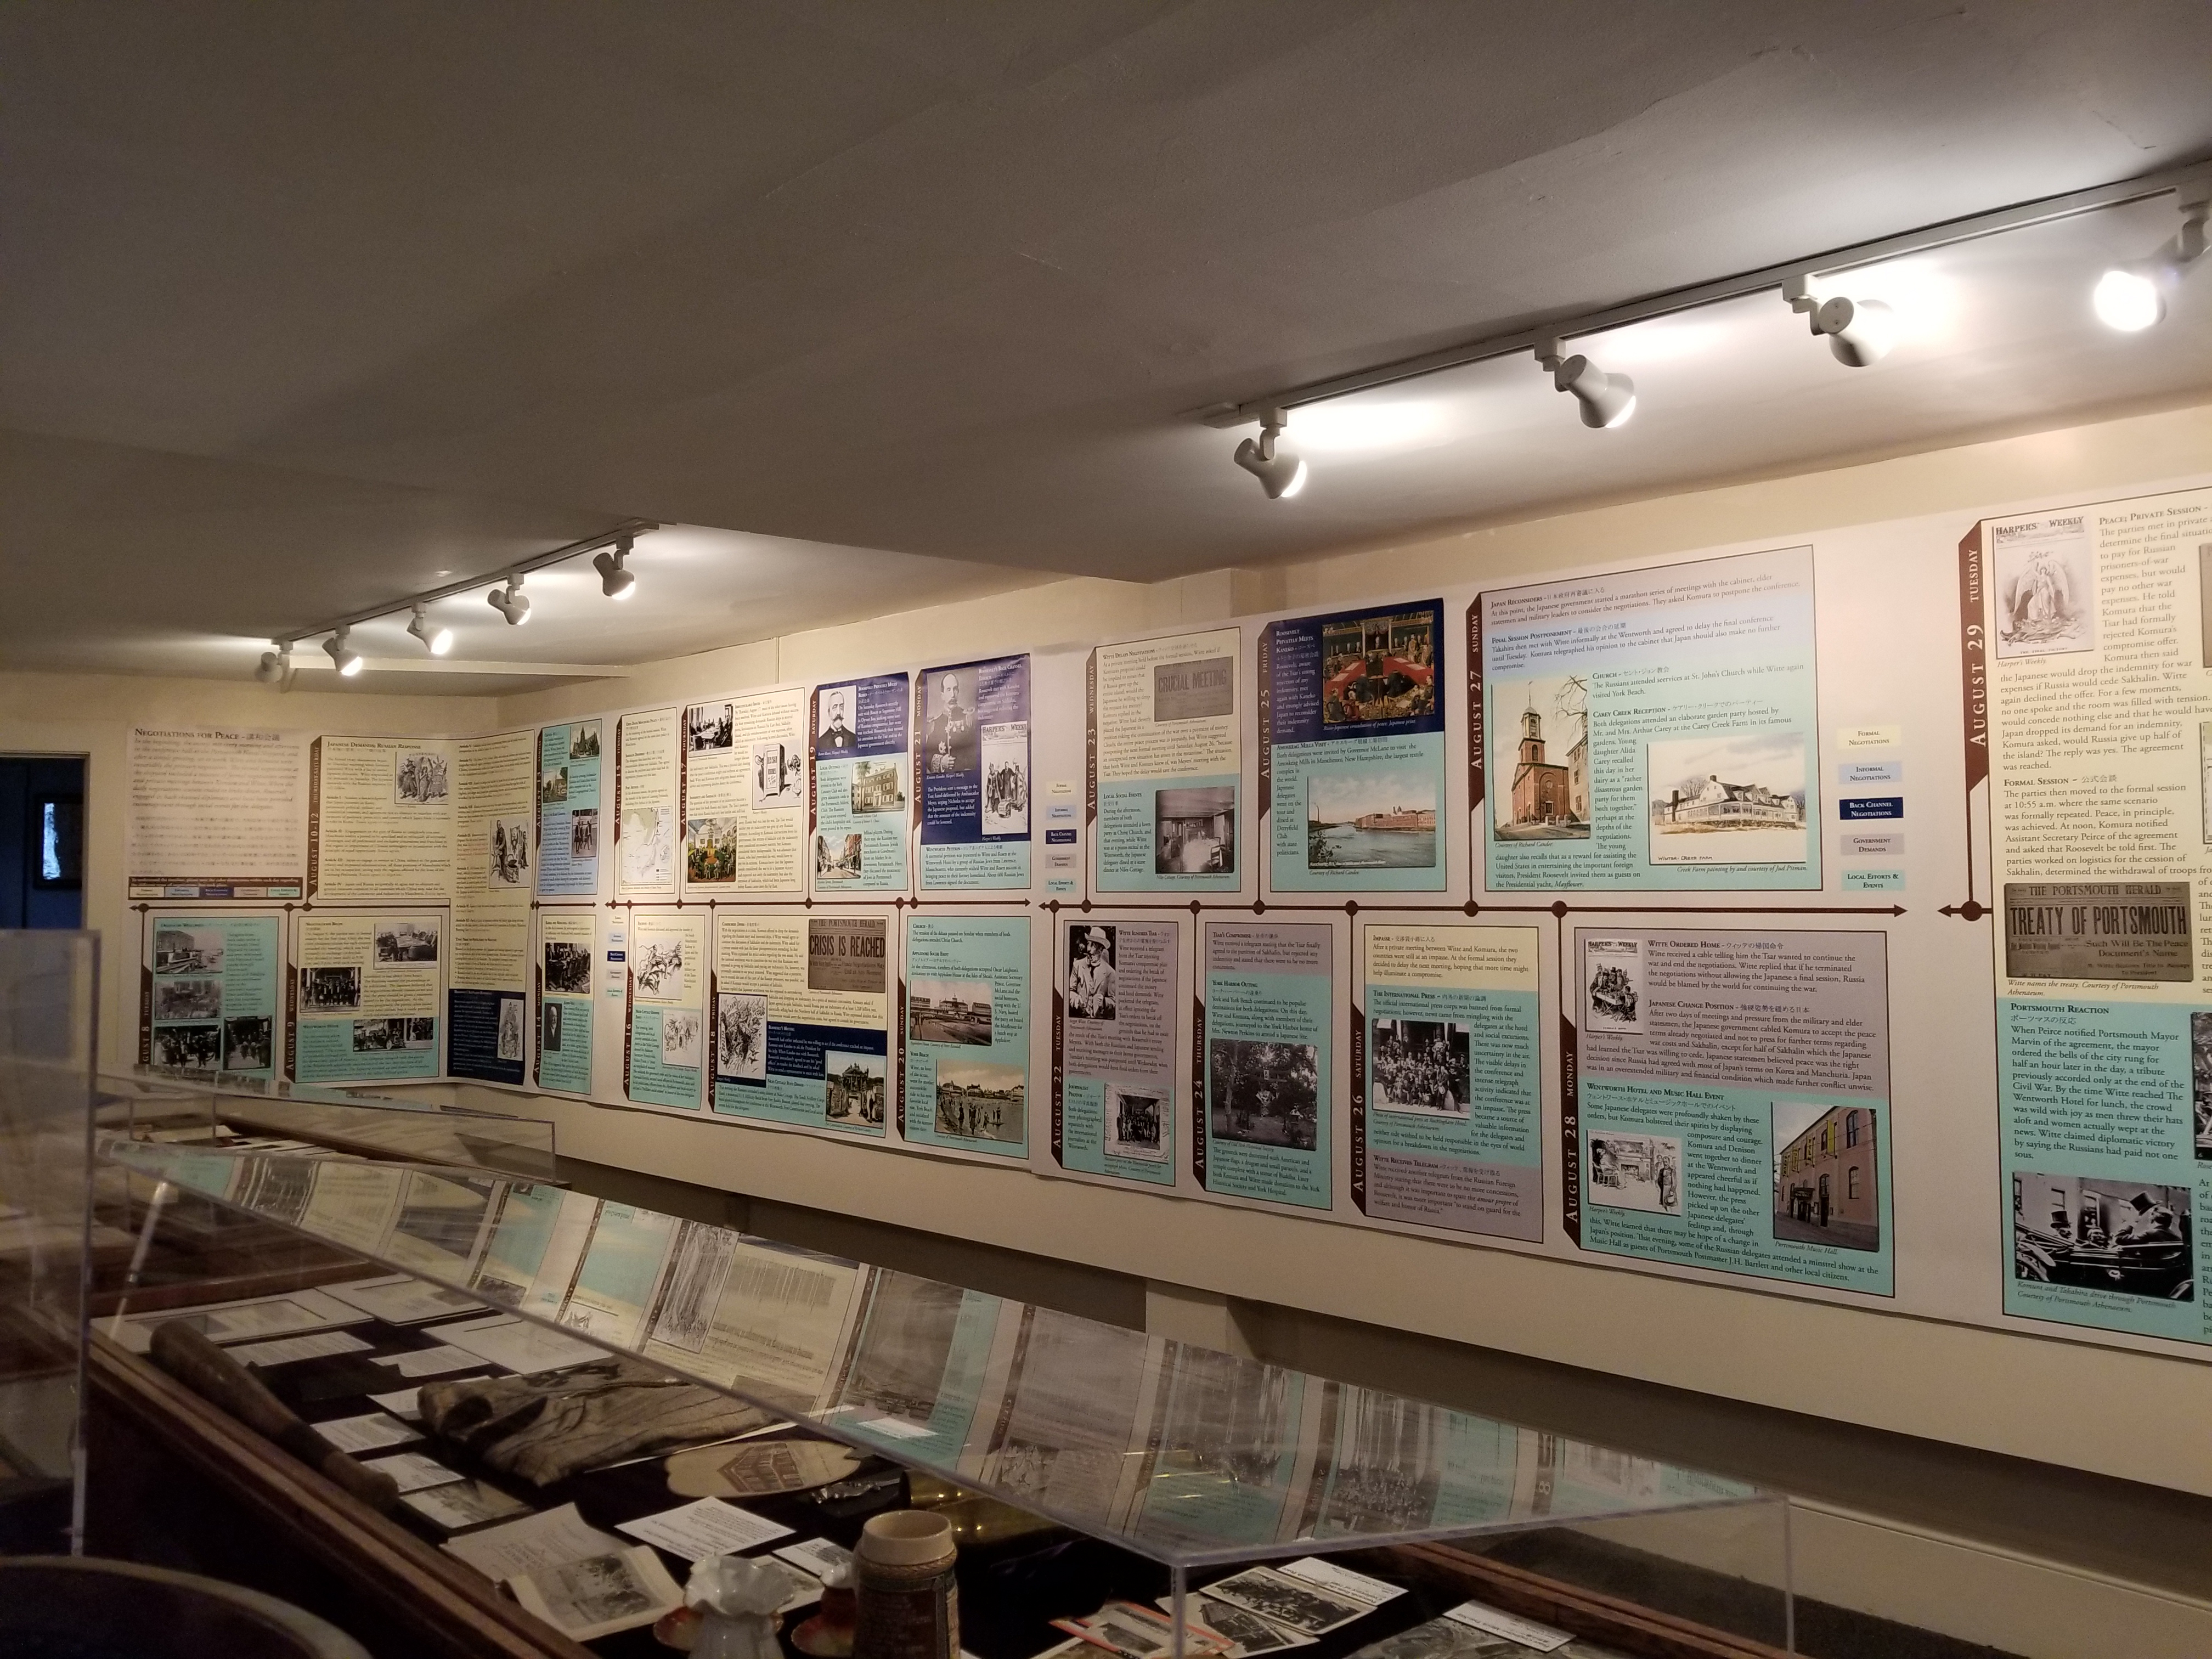 The Treaty exhibit includes a day-by-day timeline of events in Portsmouth during the negotiations.